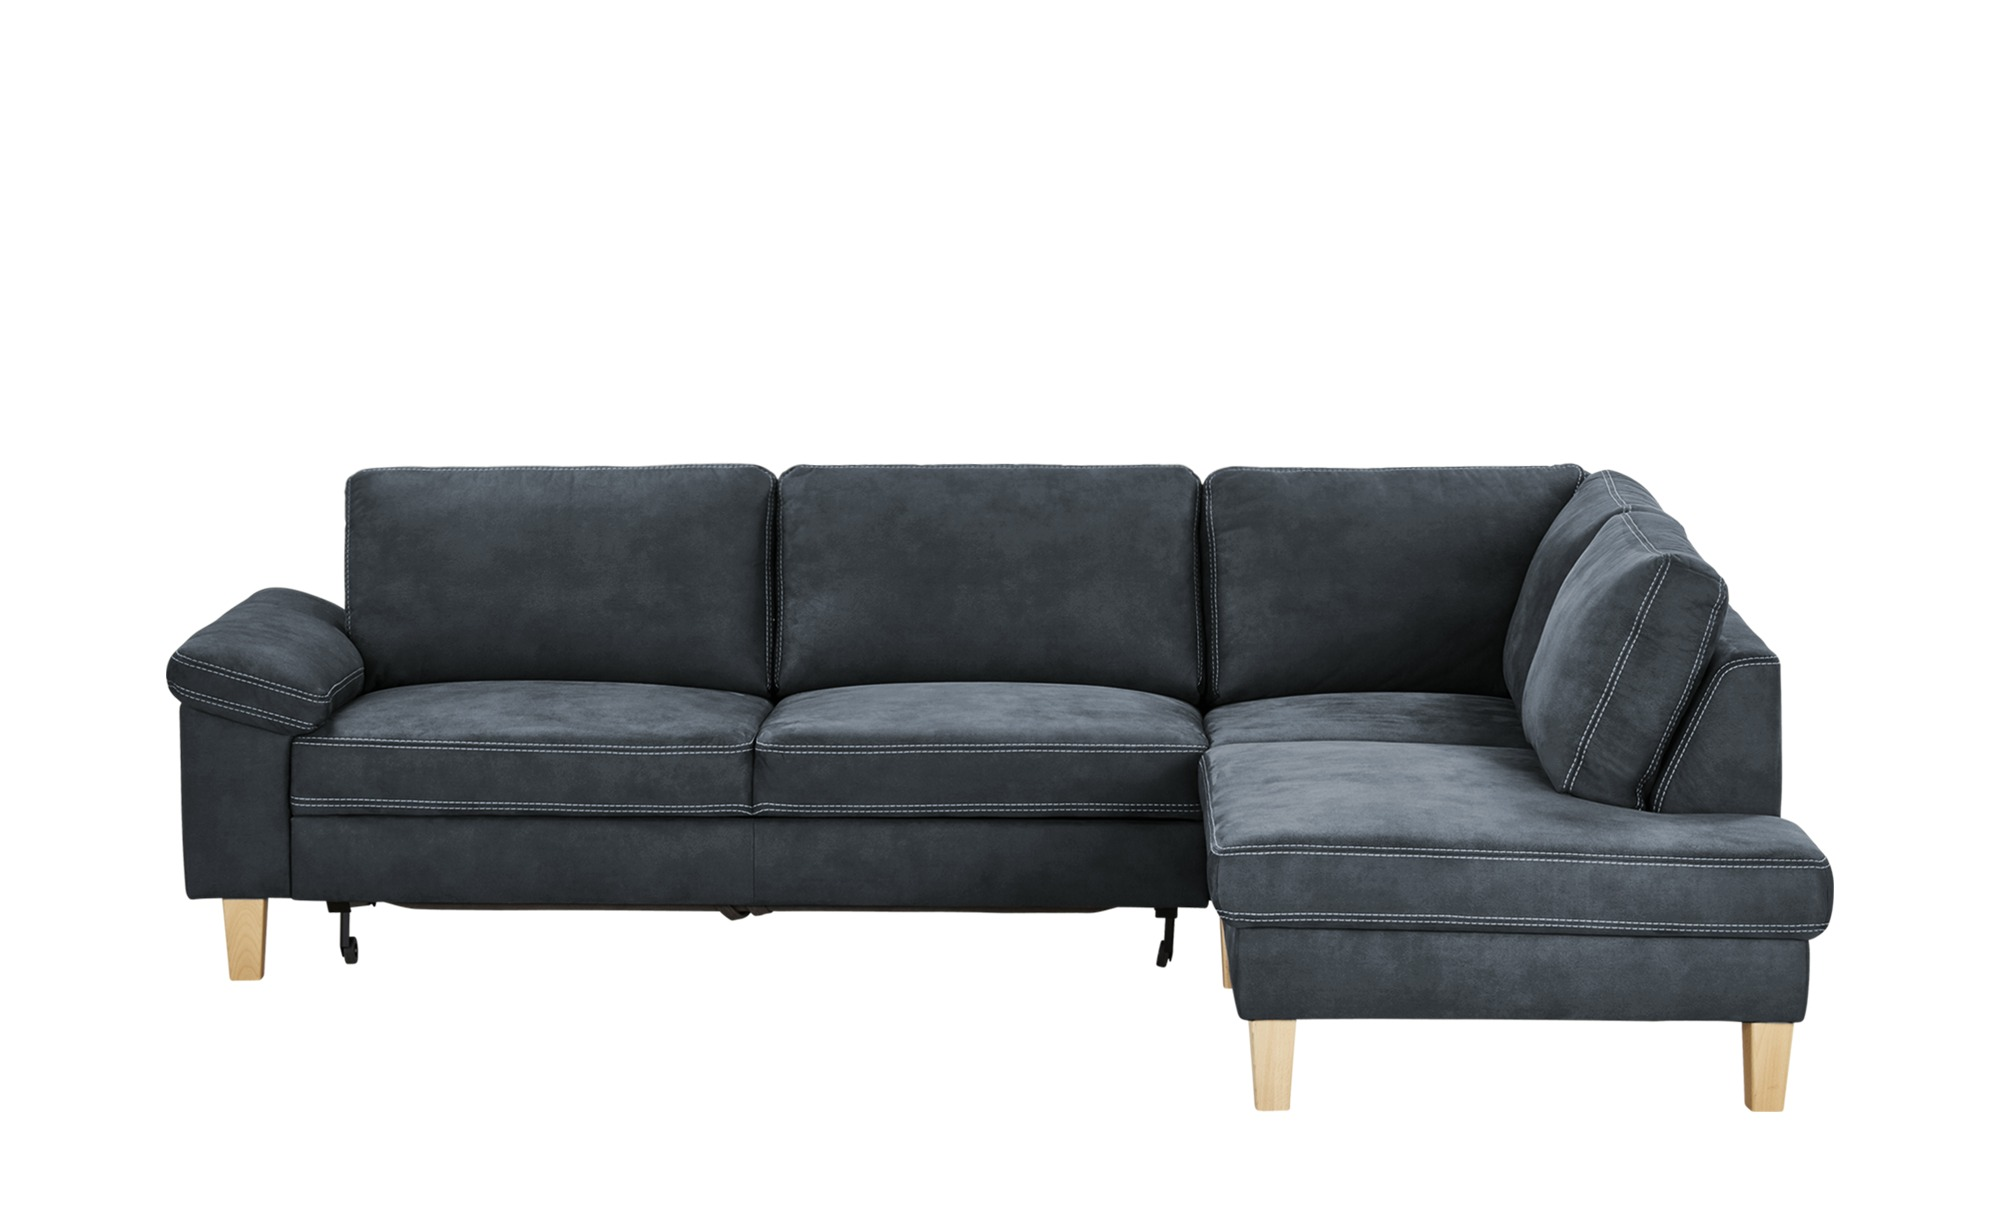 Full Size of Ecksofa Coline Dunkelblau Natura Sofa Kolonialstil In L Form Mit Bettkasten Wohnlandschaft Boxspring Schlaffunktion Leder Kleines Verkaufen Big Regal Wohnzimmer Sofa Konfigurator Höffner